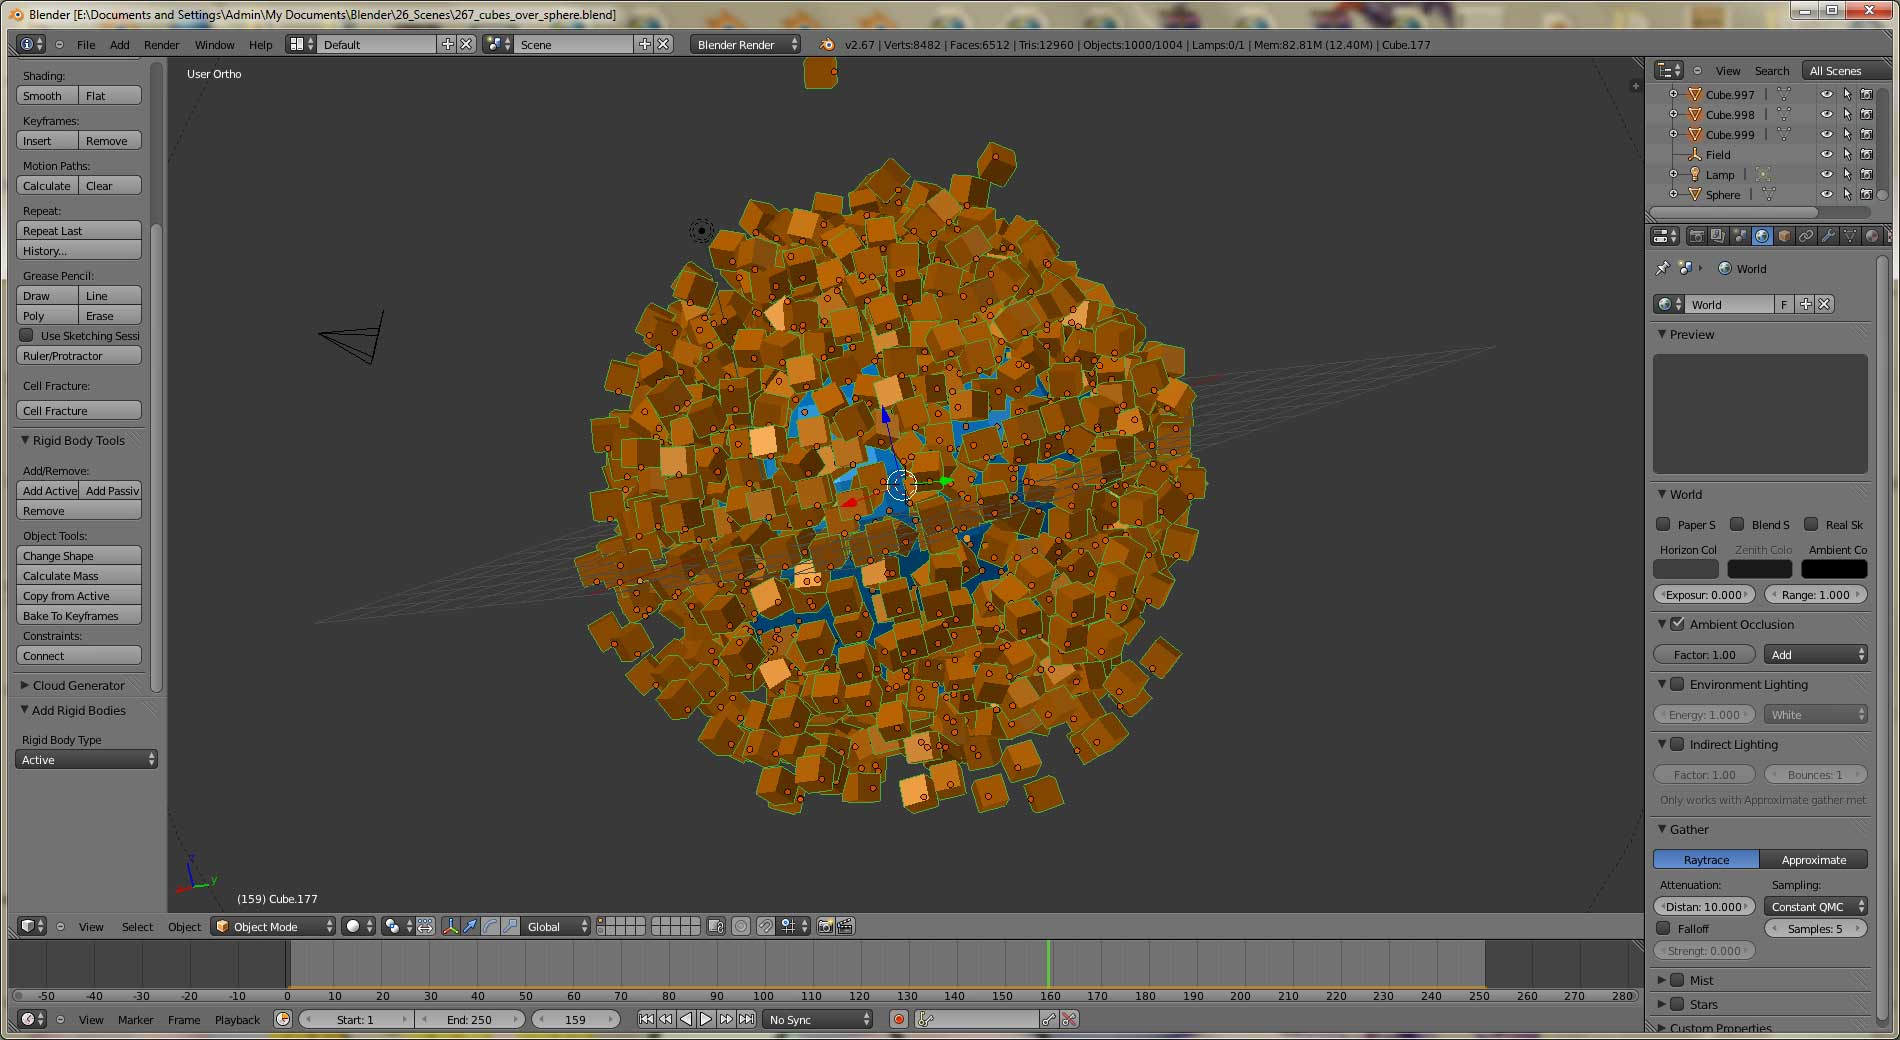 How to avoid particles cut / intersect other particles